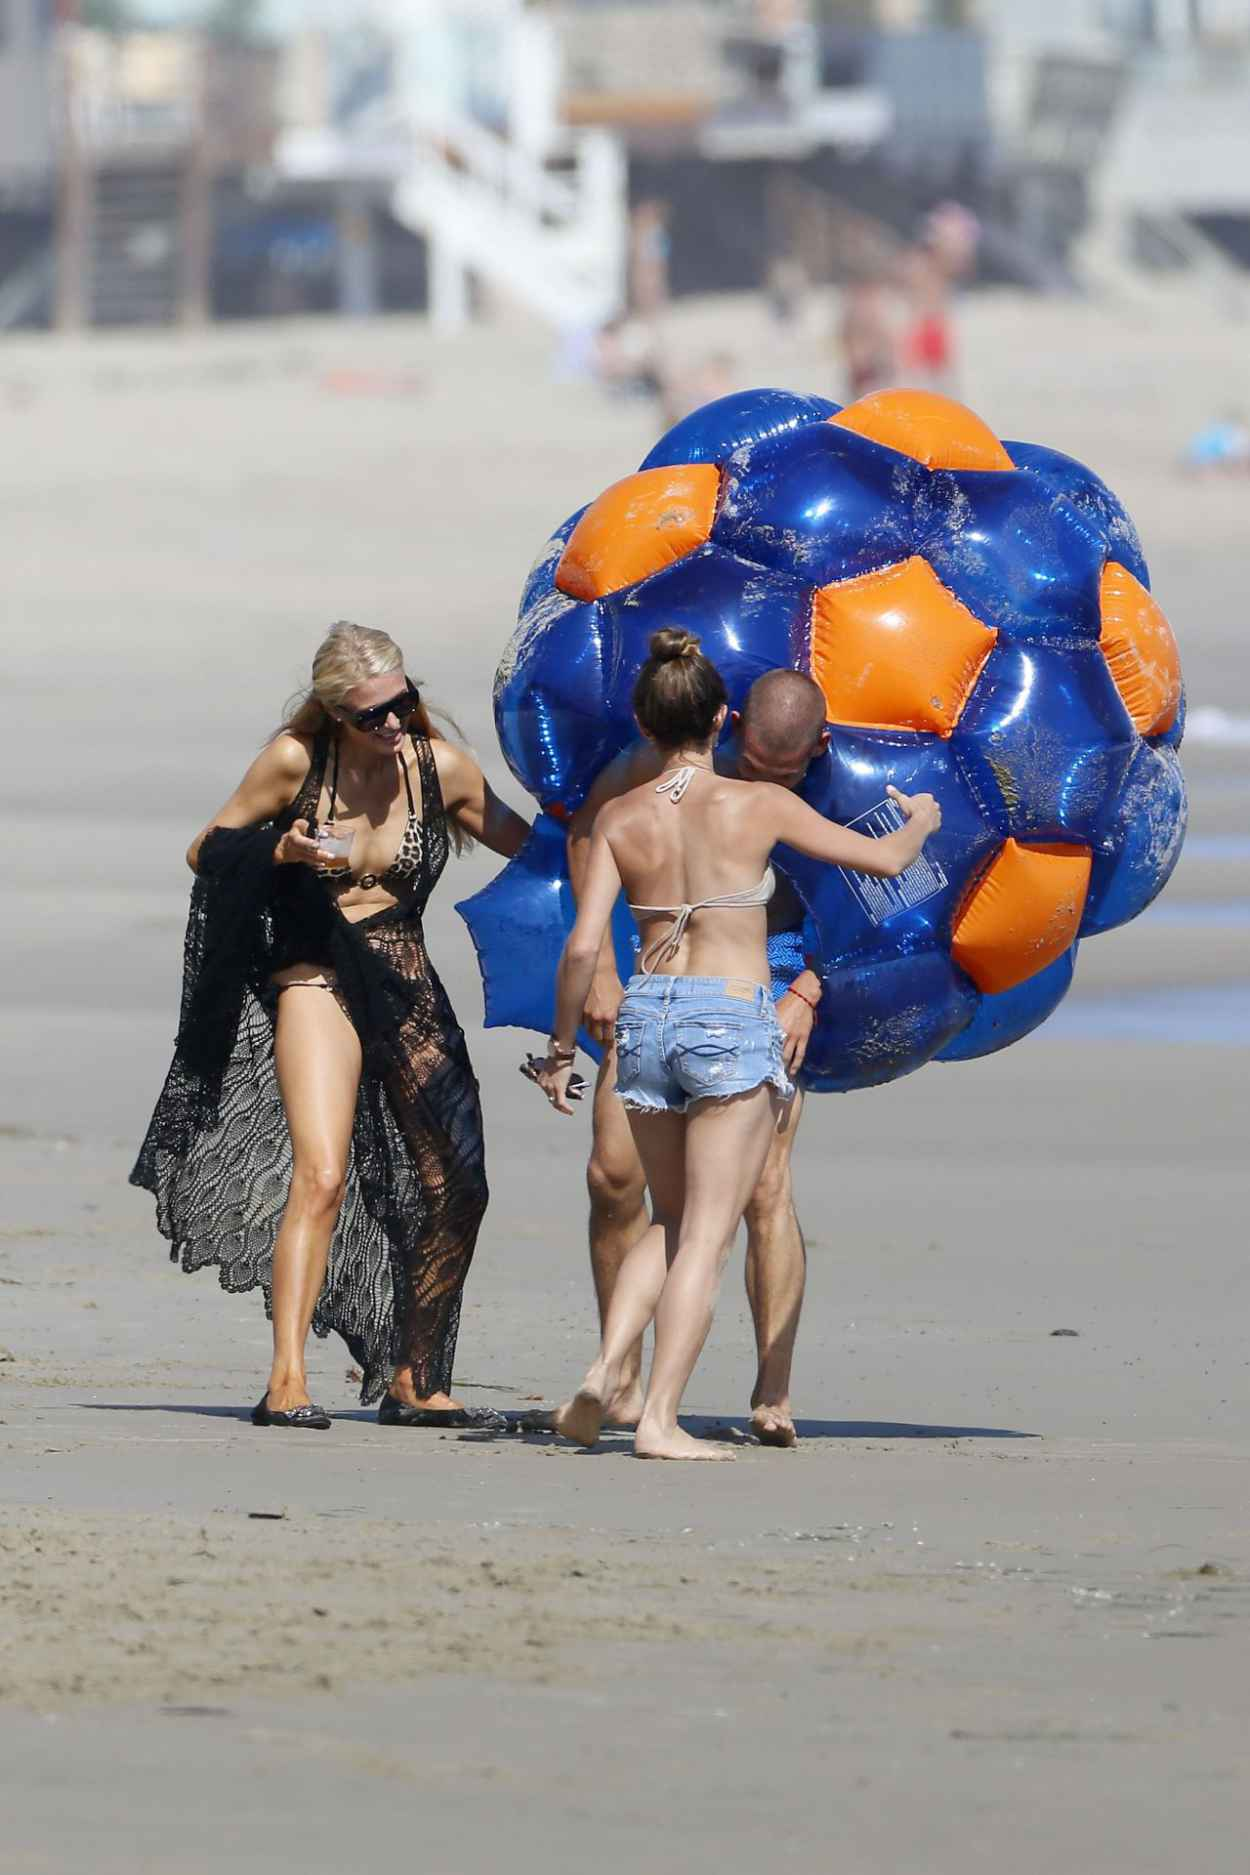 Paris Hilton in a Bikini on the Beach in Malibu - July 2015-5